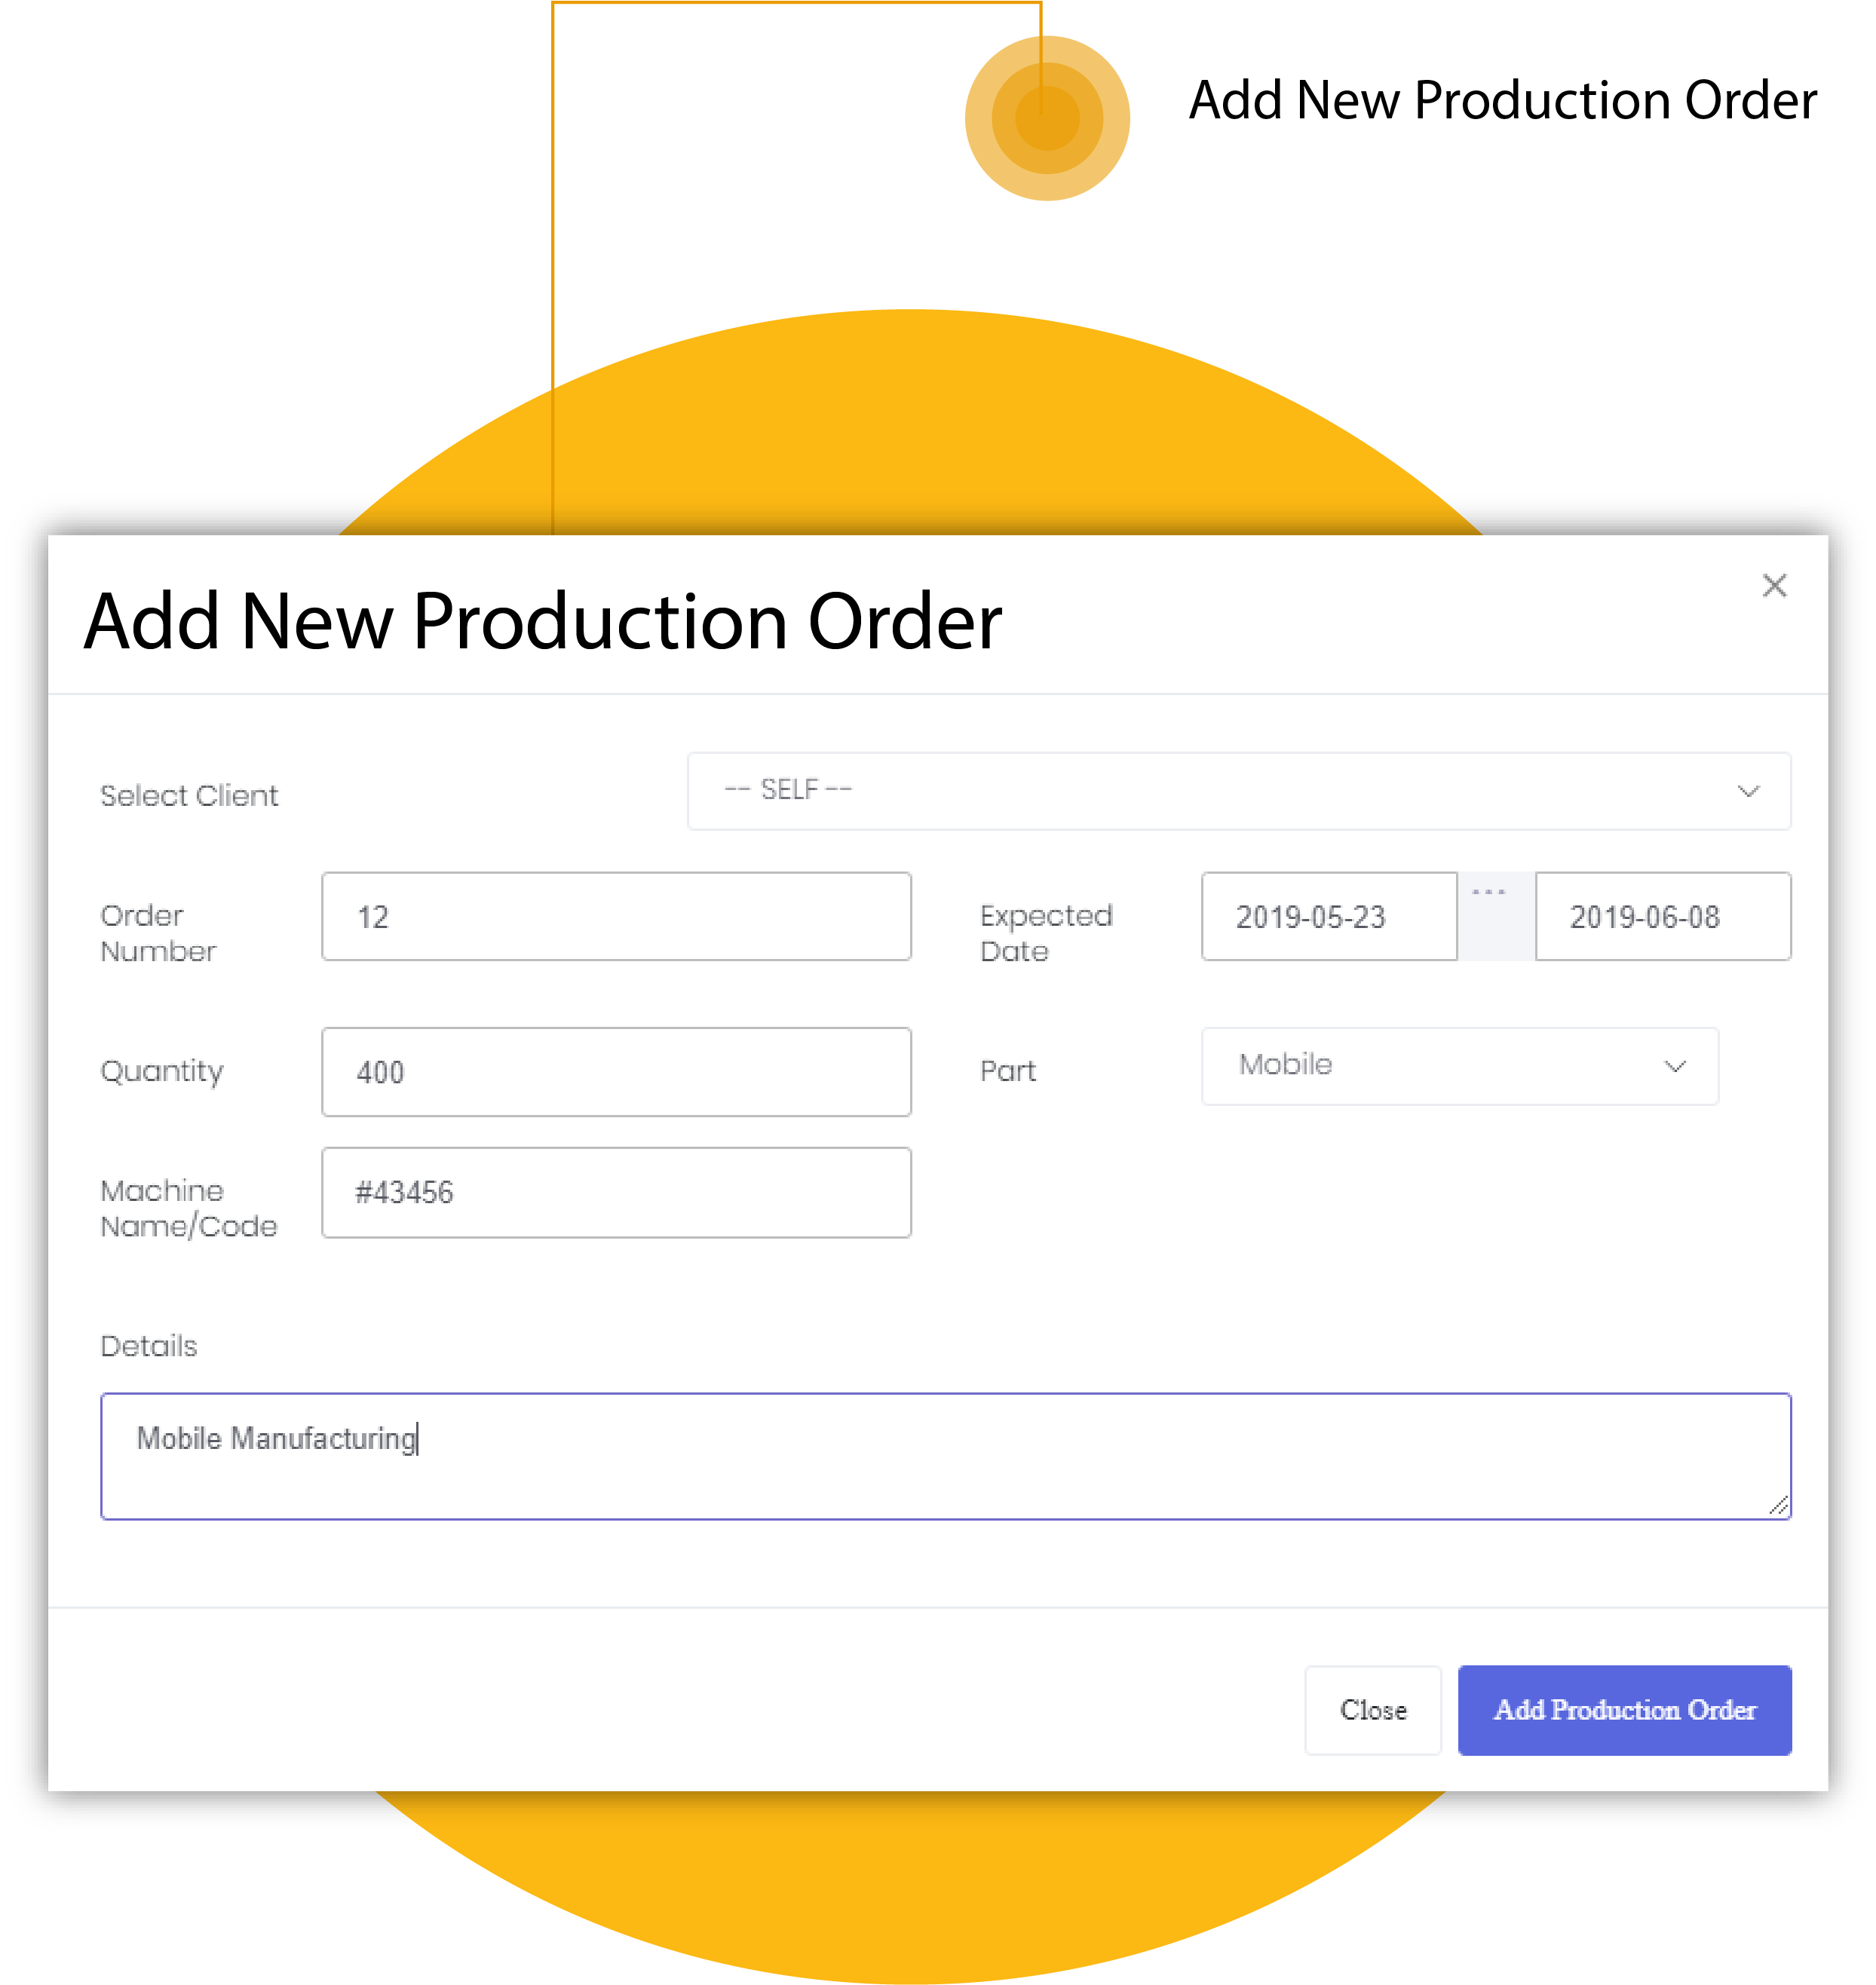 Add New Production Order